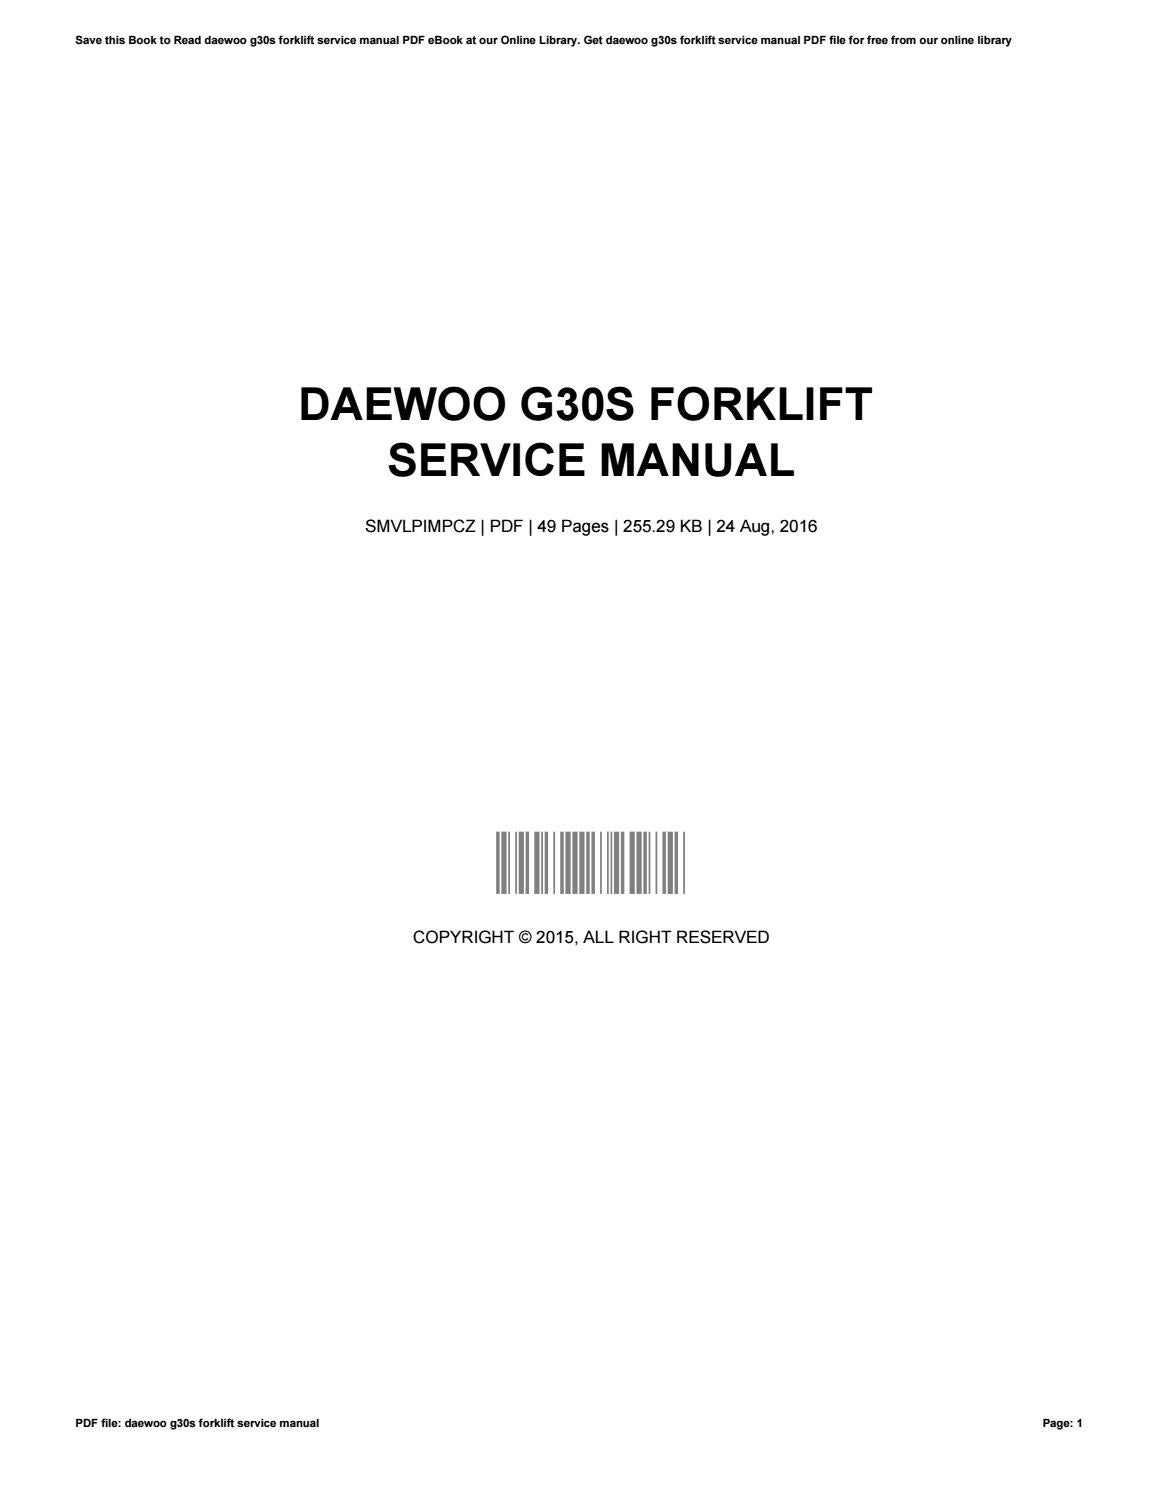 Daewoo g30s forklift service manual by MartyMcCune46921 - issuu